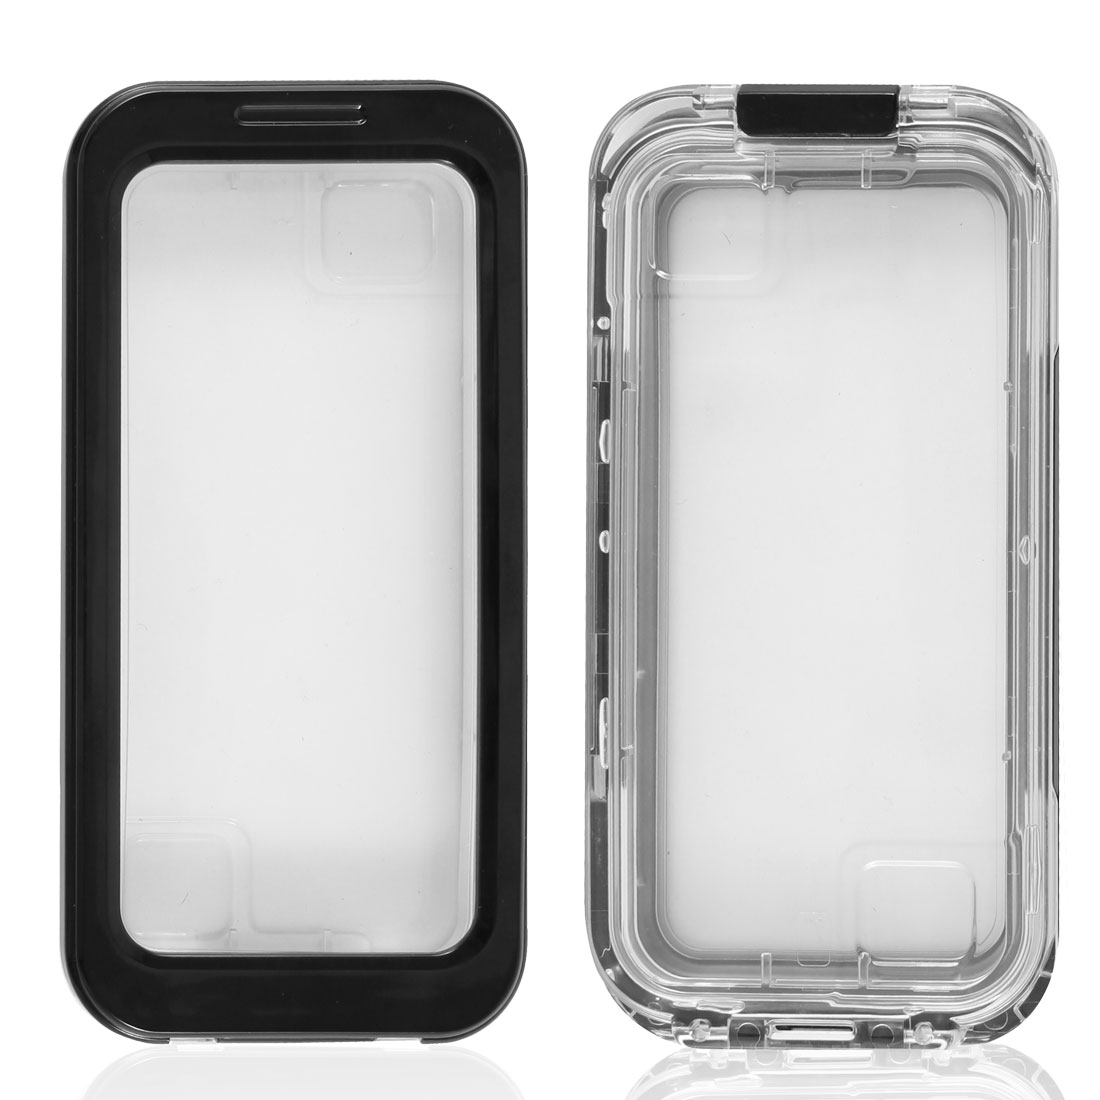 Black Plastic Silicone Waterproof Dirt Proof Case Cover for Apple iPhone 4 4G 4S 5 5G